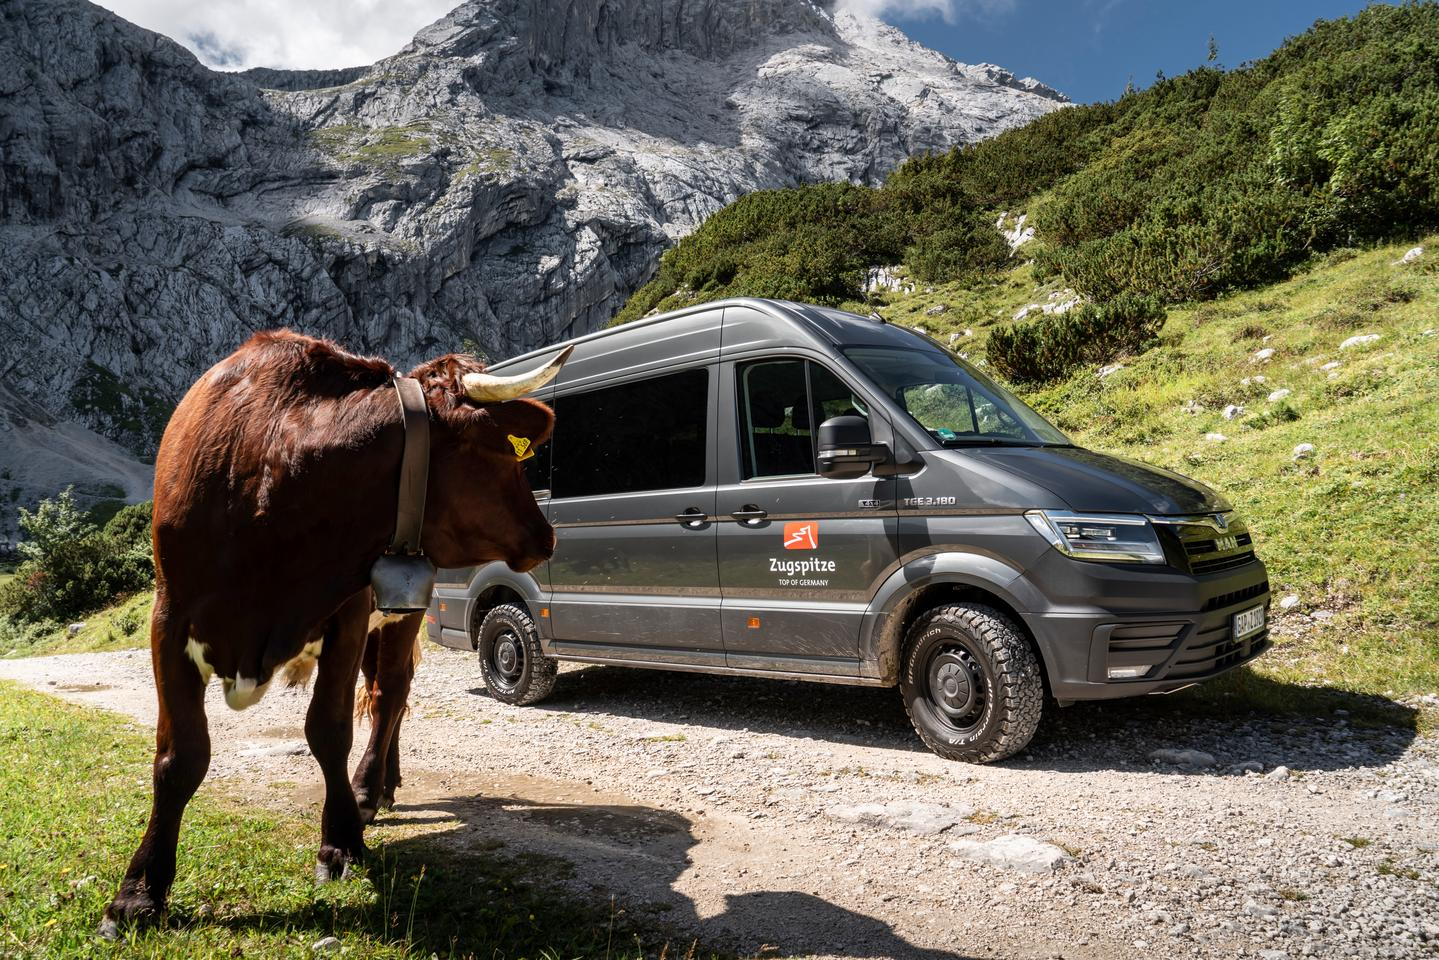 MAN imagines the tracked TGE 3.180 4x4 combi transporting goods to alpine pastures in winter, which looks like what this BZB van might be doing in the warmer, drier months